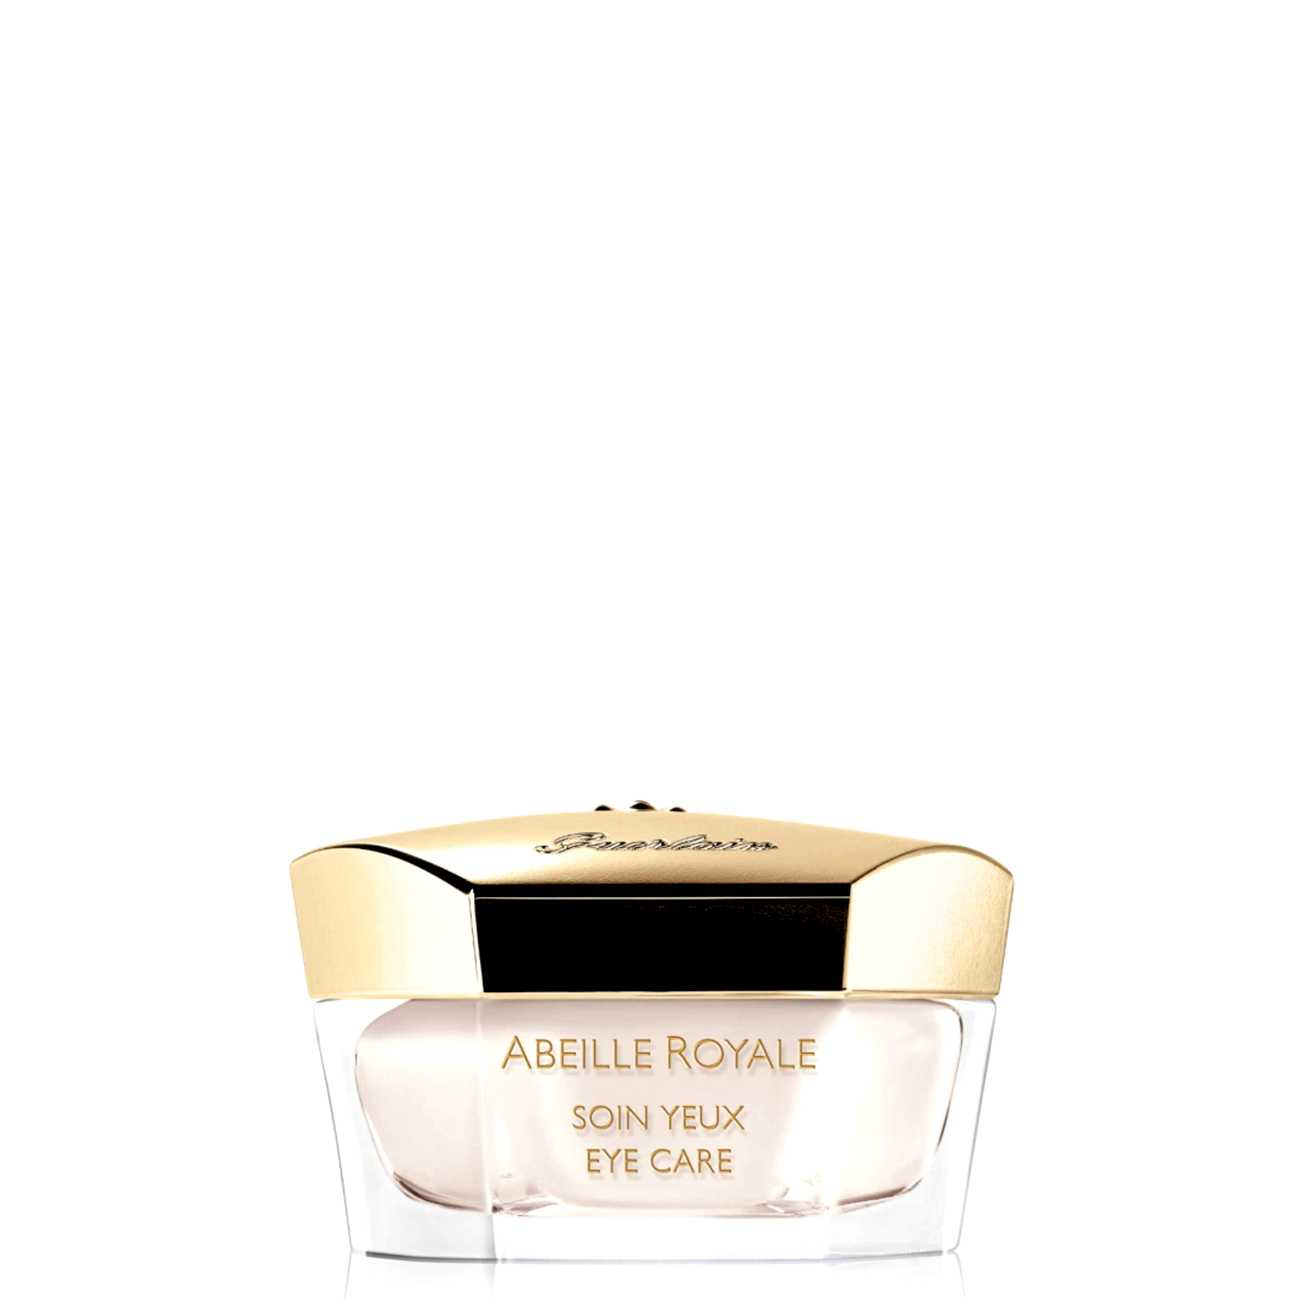 ABEILLE ROYALE EYE CARE 15 ML imagine produs